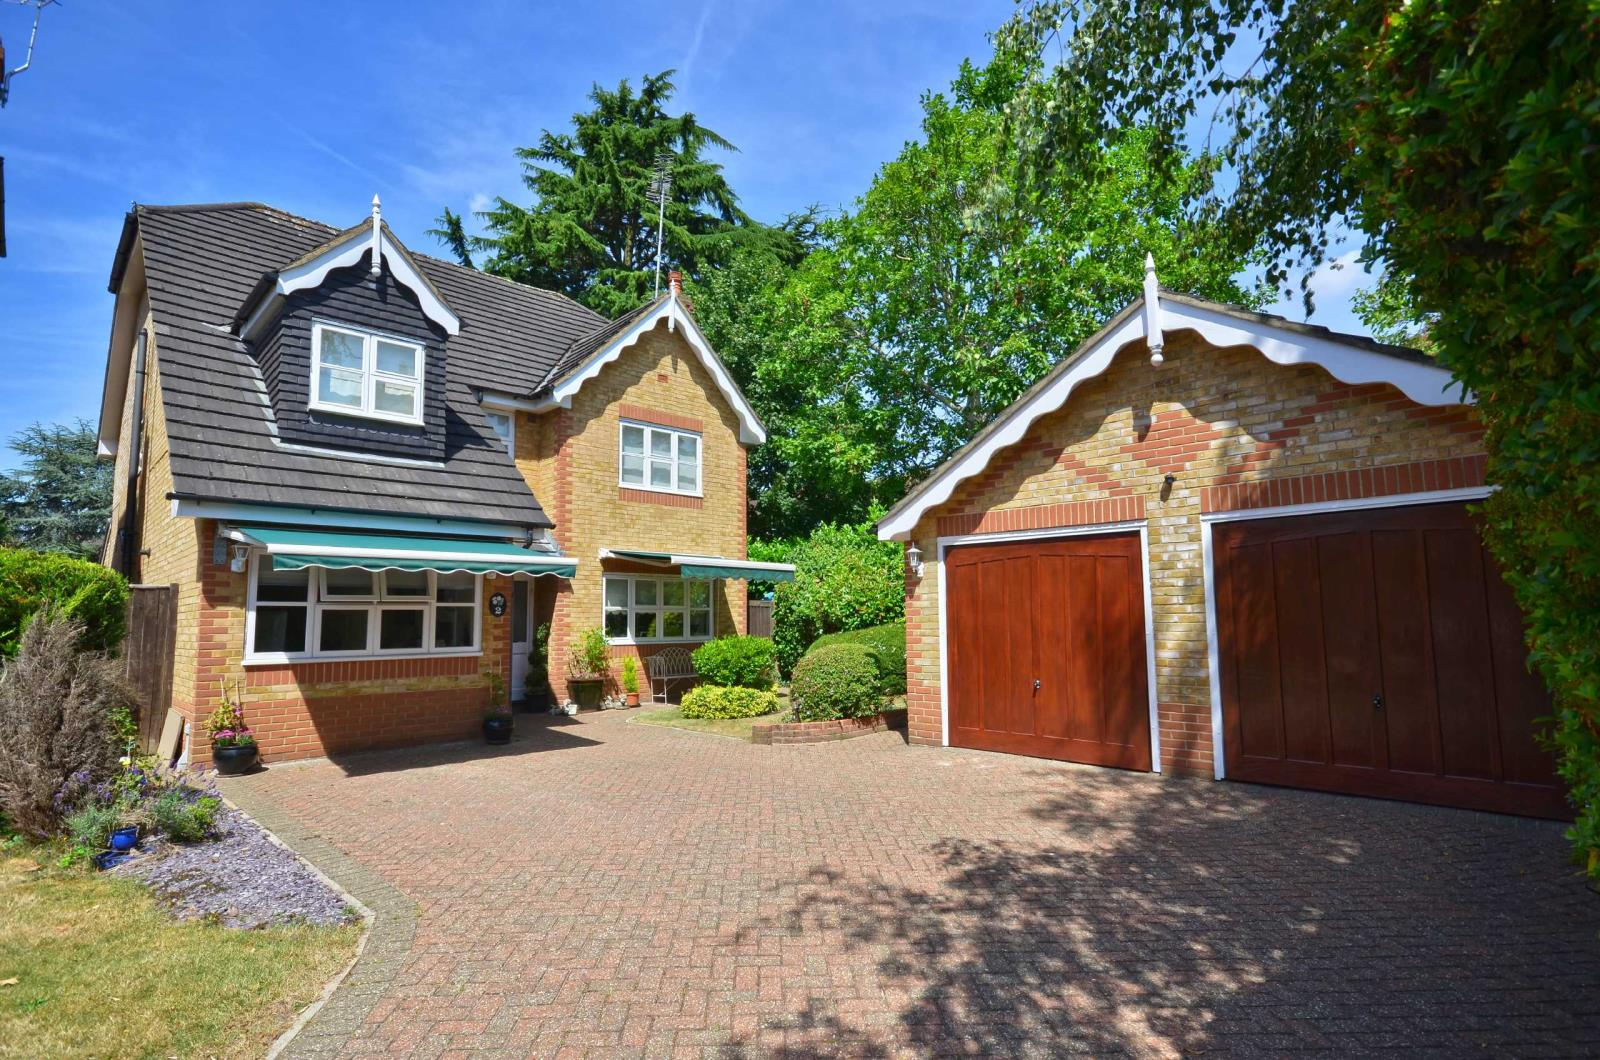 5 Bedrooms Detached House for sale in Alexandra Mews, Watford, Hertfordshire, WD17